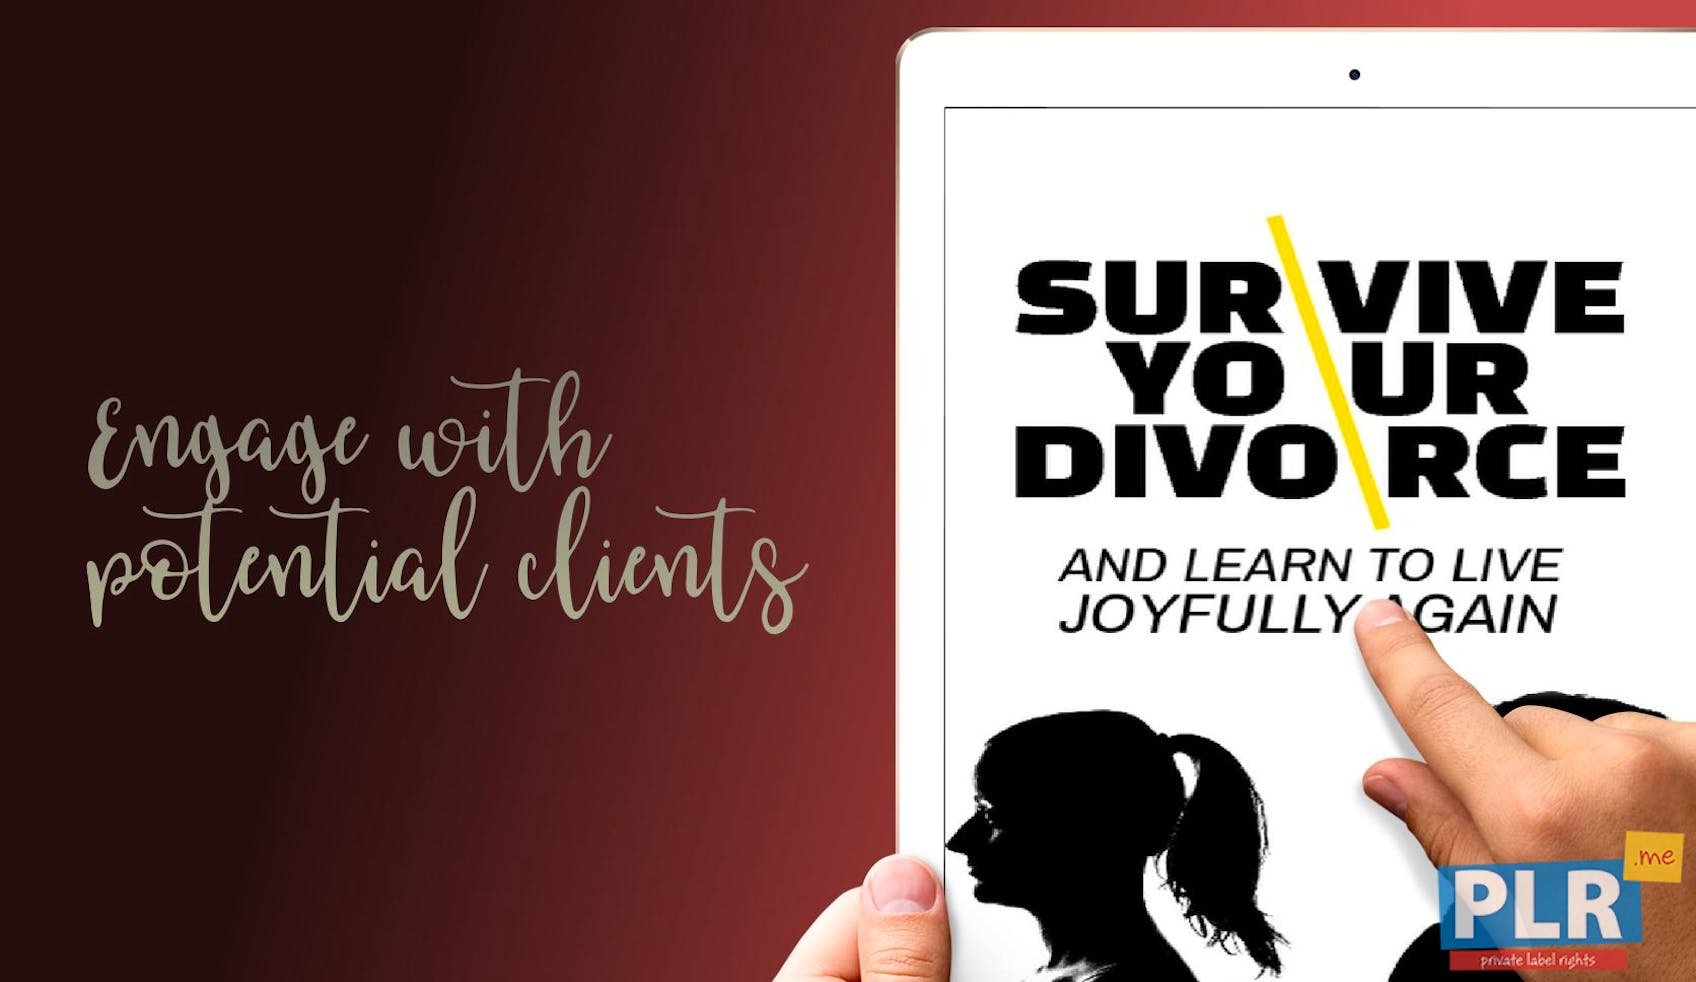 Survive Your Divorce And Learn To Live Joyfully Again